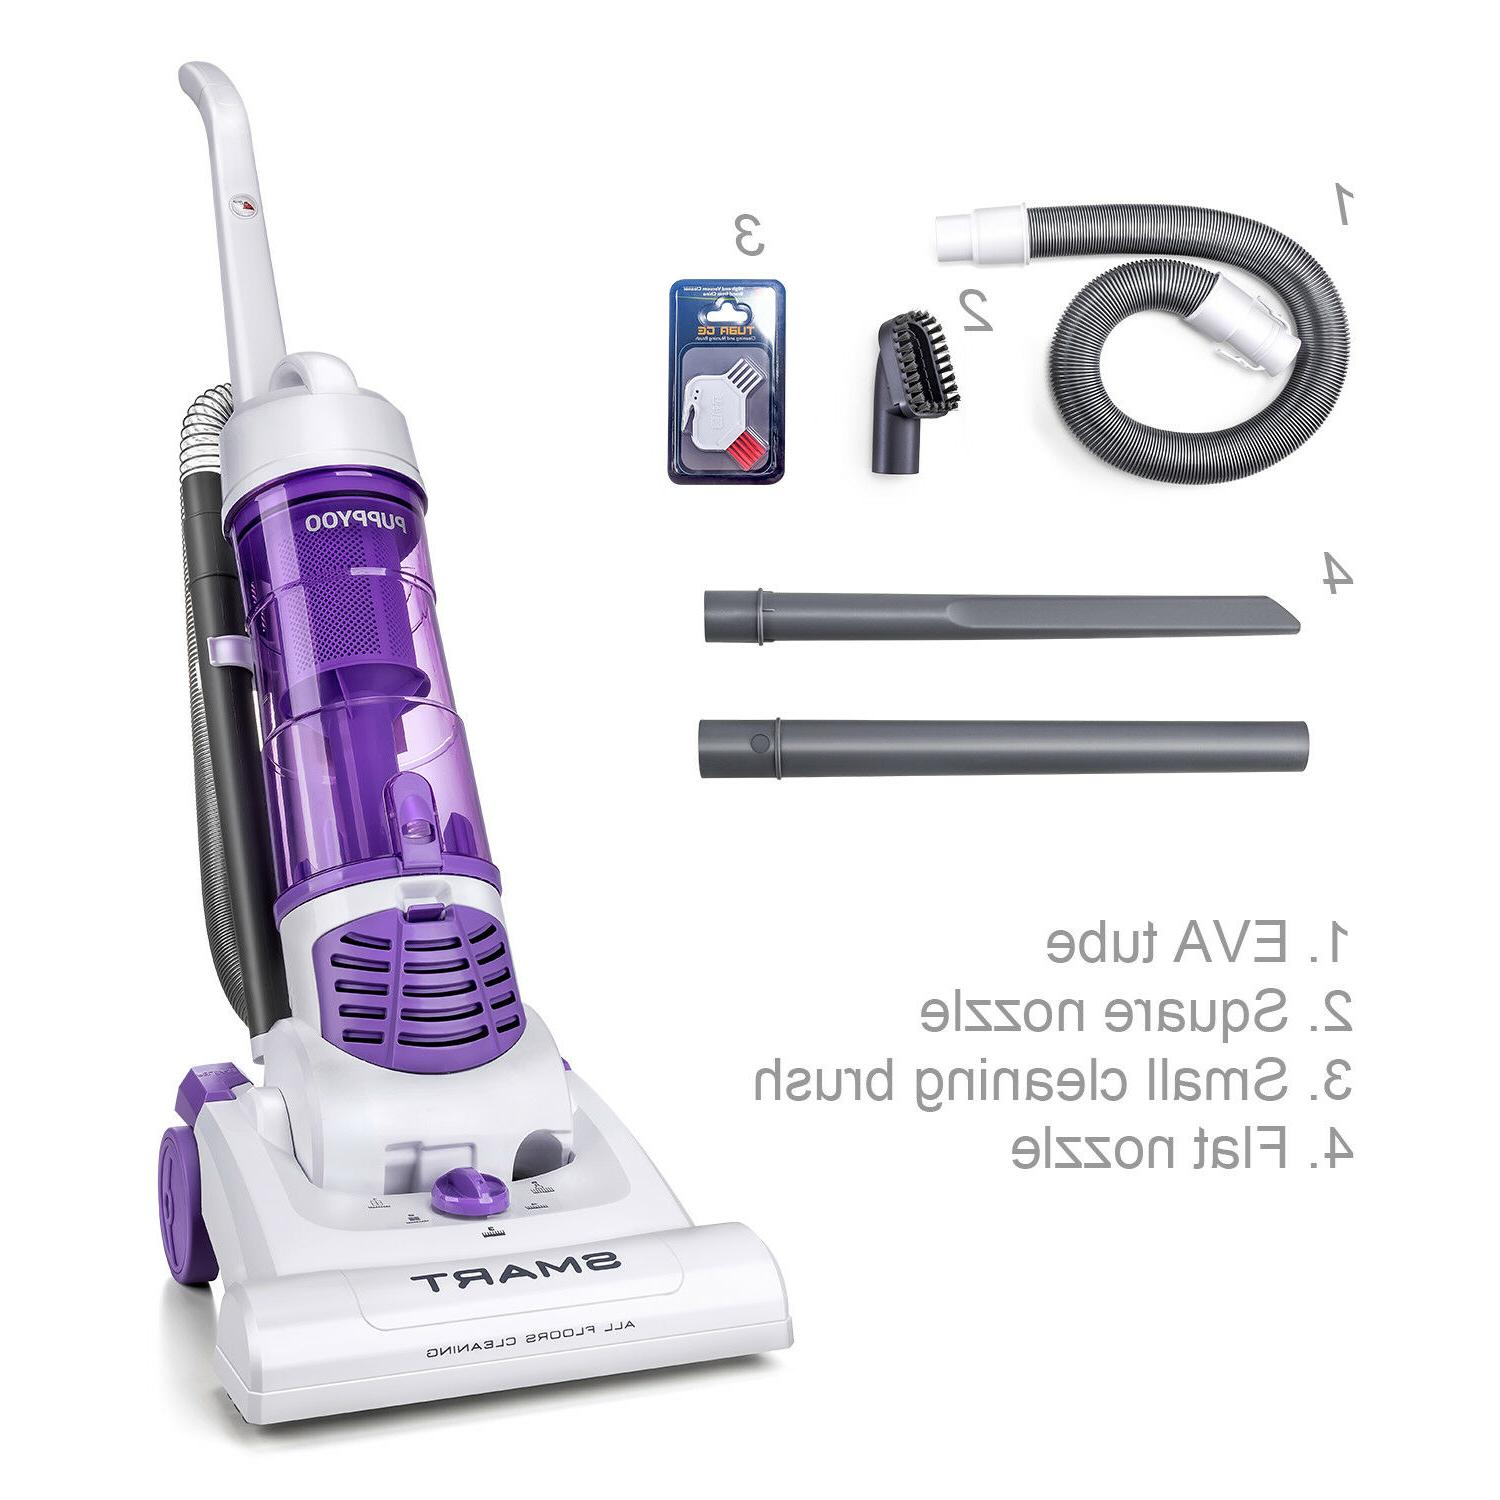 PUPPYOO Upright Cleaner Bagless Corded Portable 1200W 2.9L